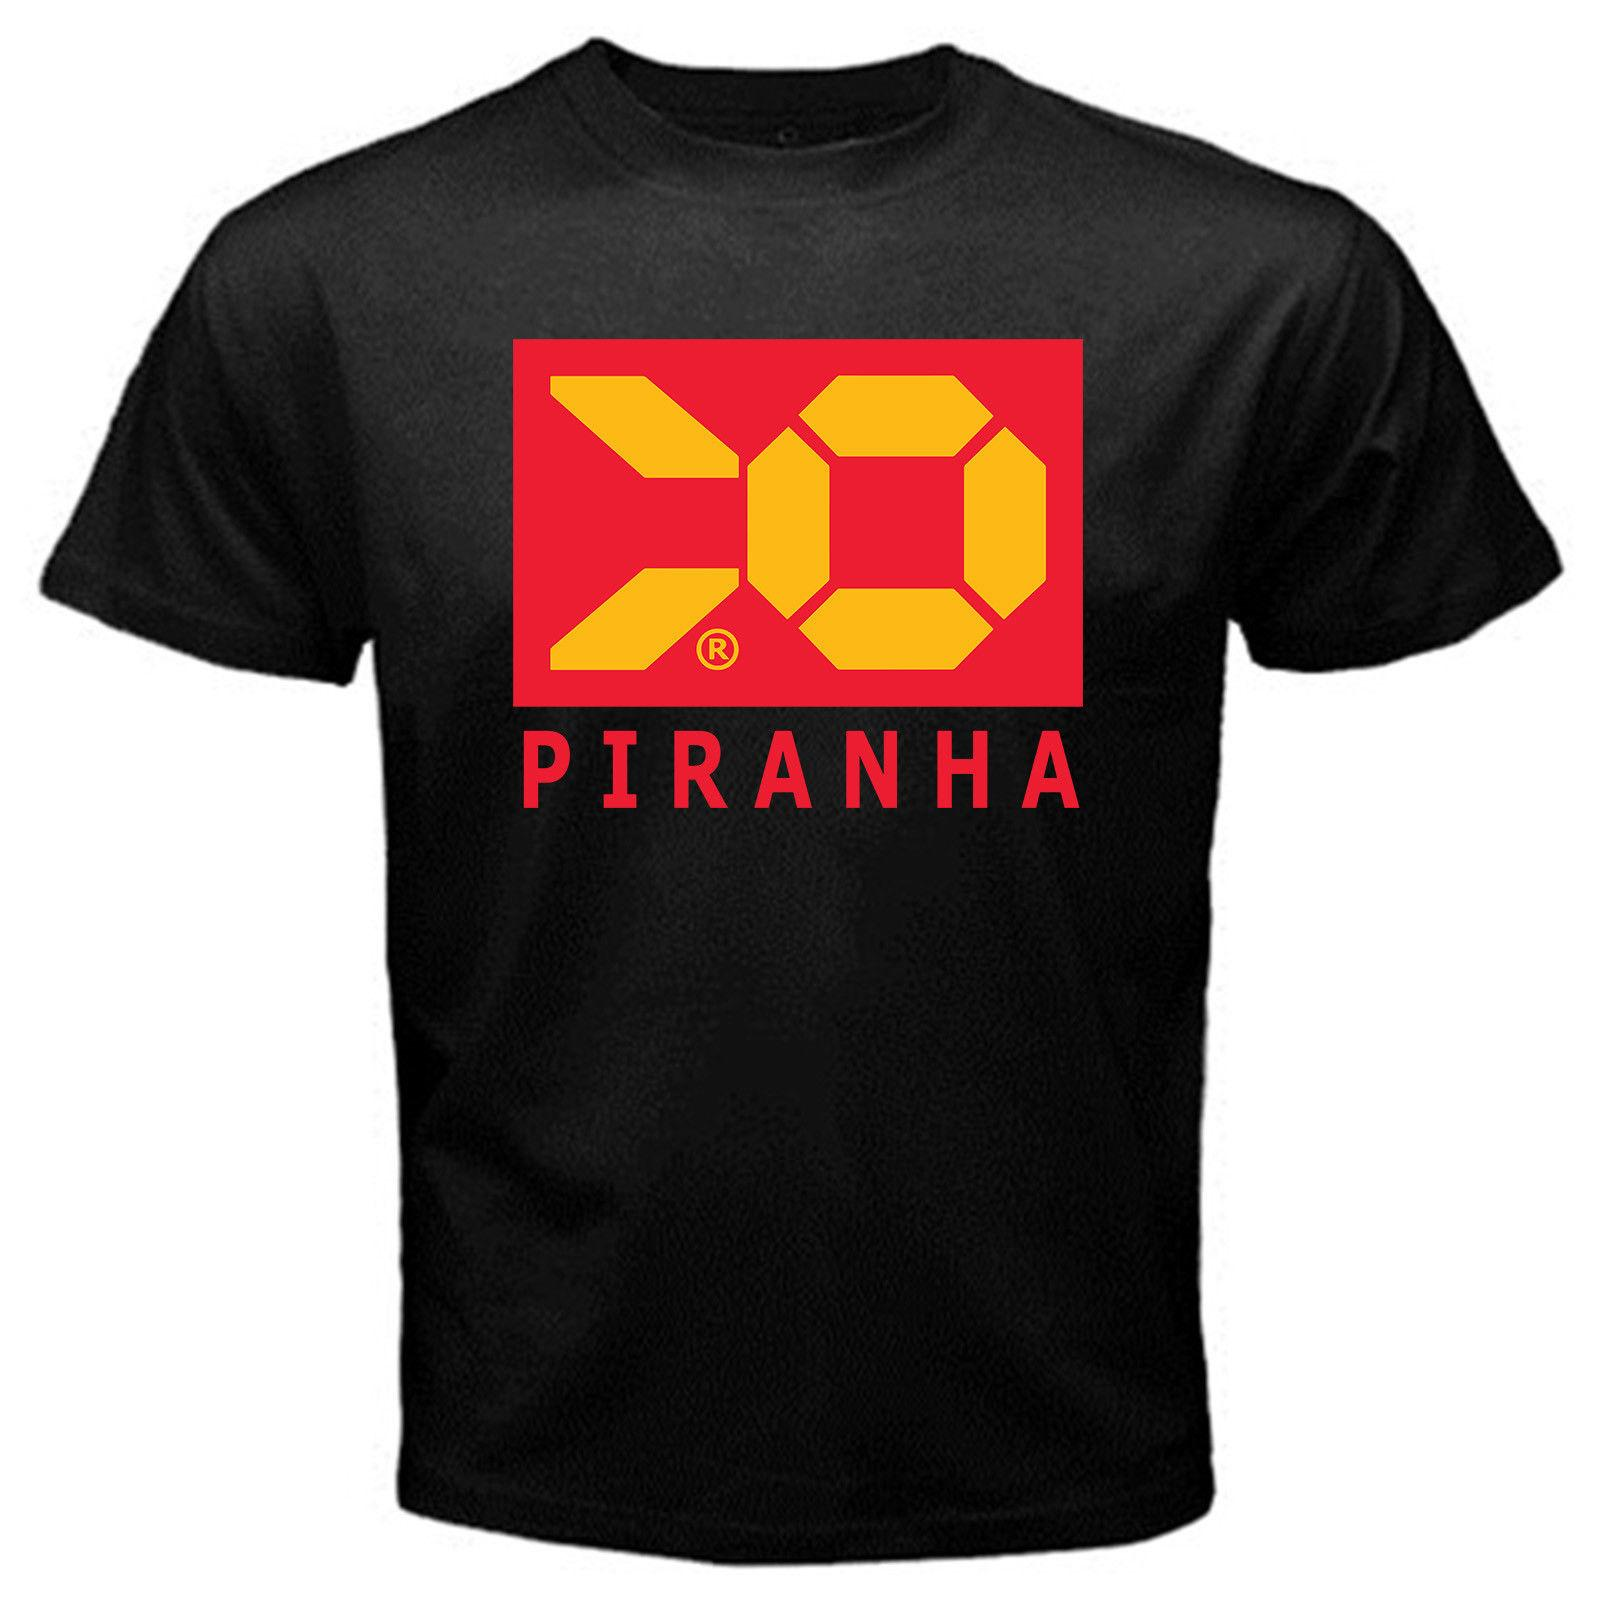 31644b2281c40 Piranha Advancement Wipeout 2097 Anti Gravity Racing Black Tshirt Funniest  Tee Shirts Fun Tee Shirt From Charm83